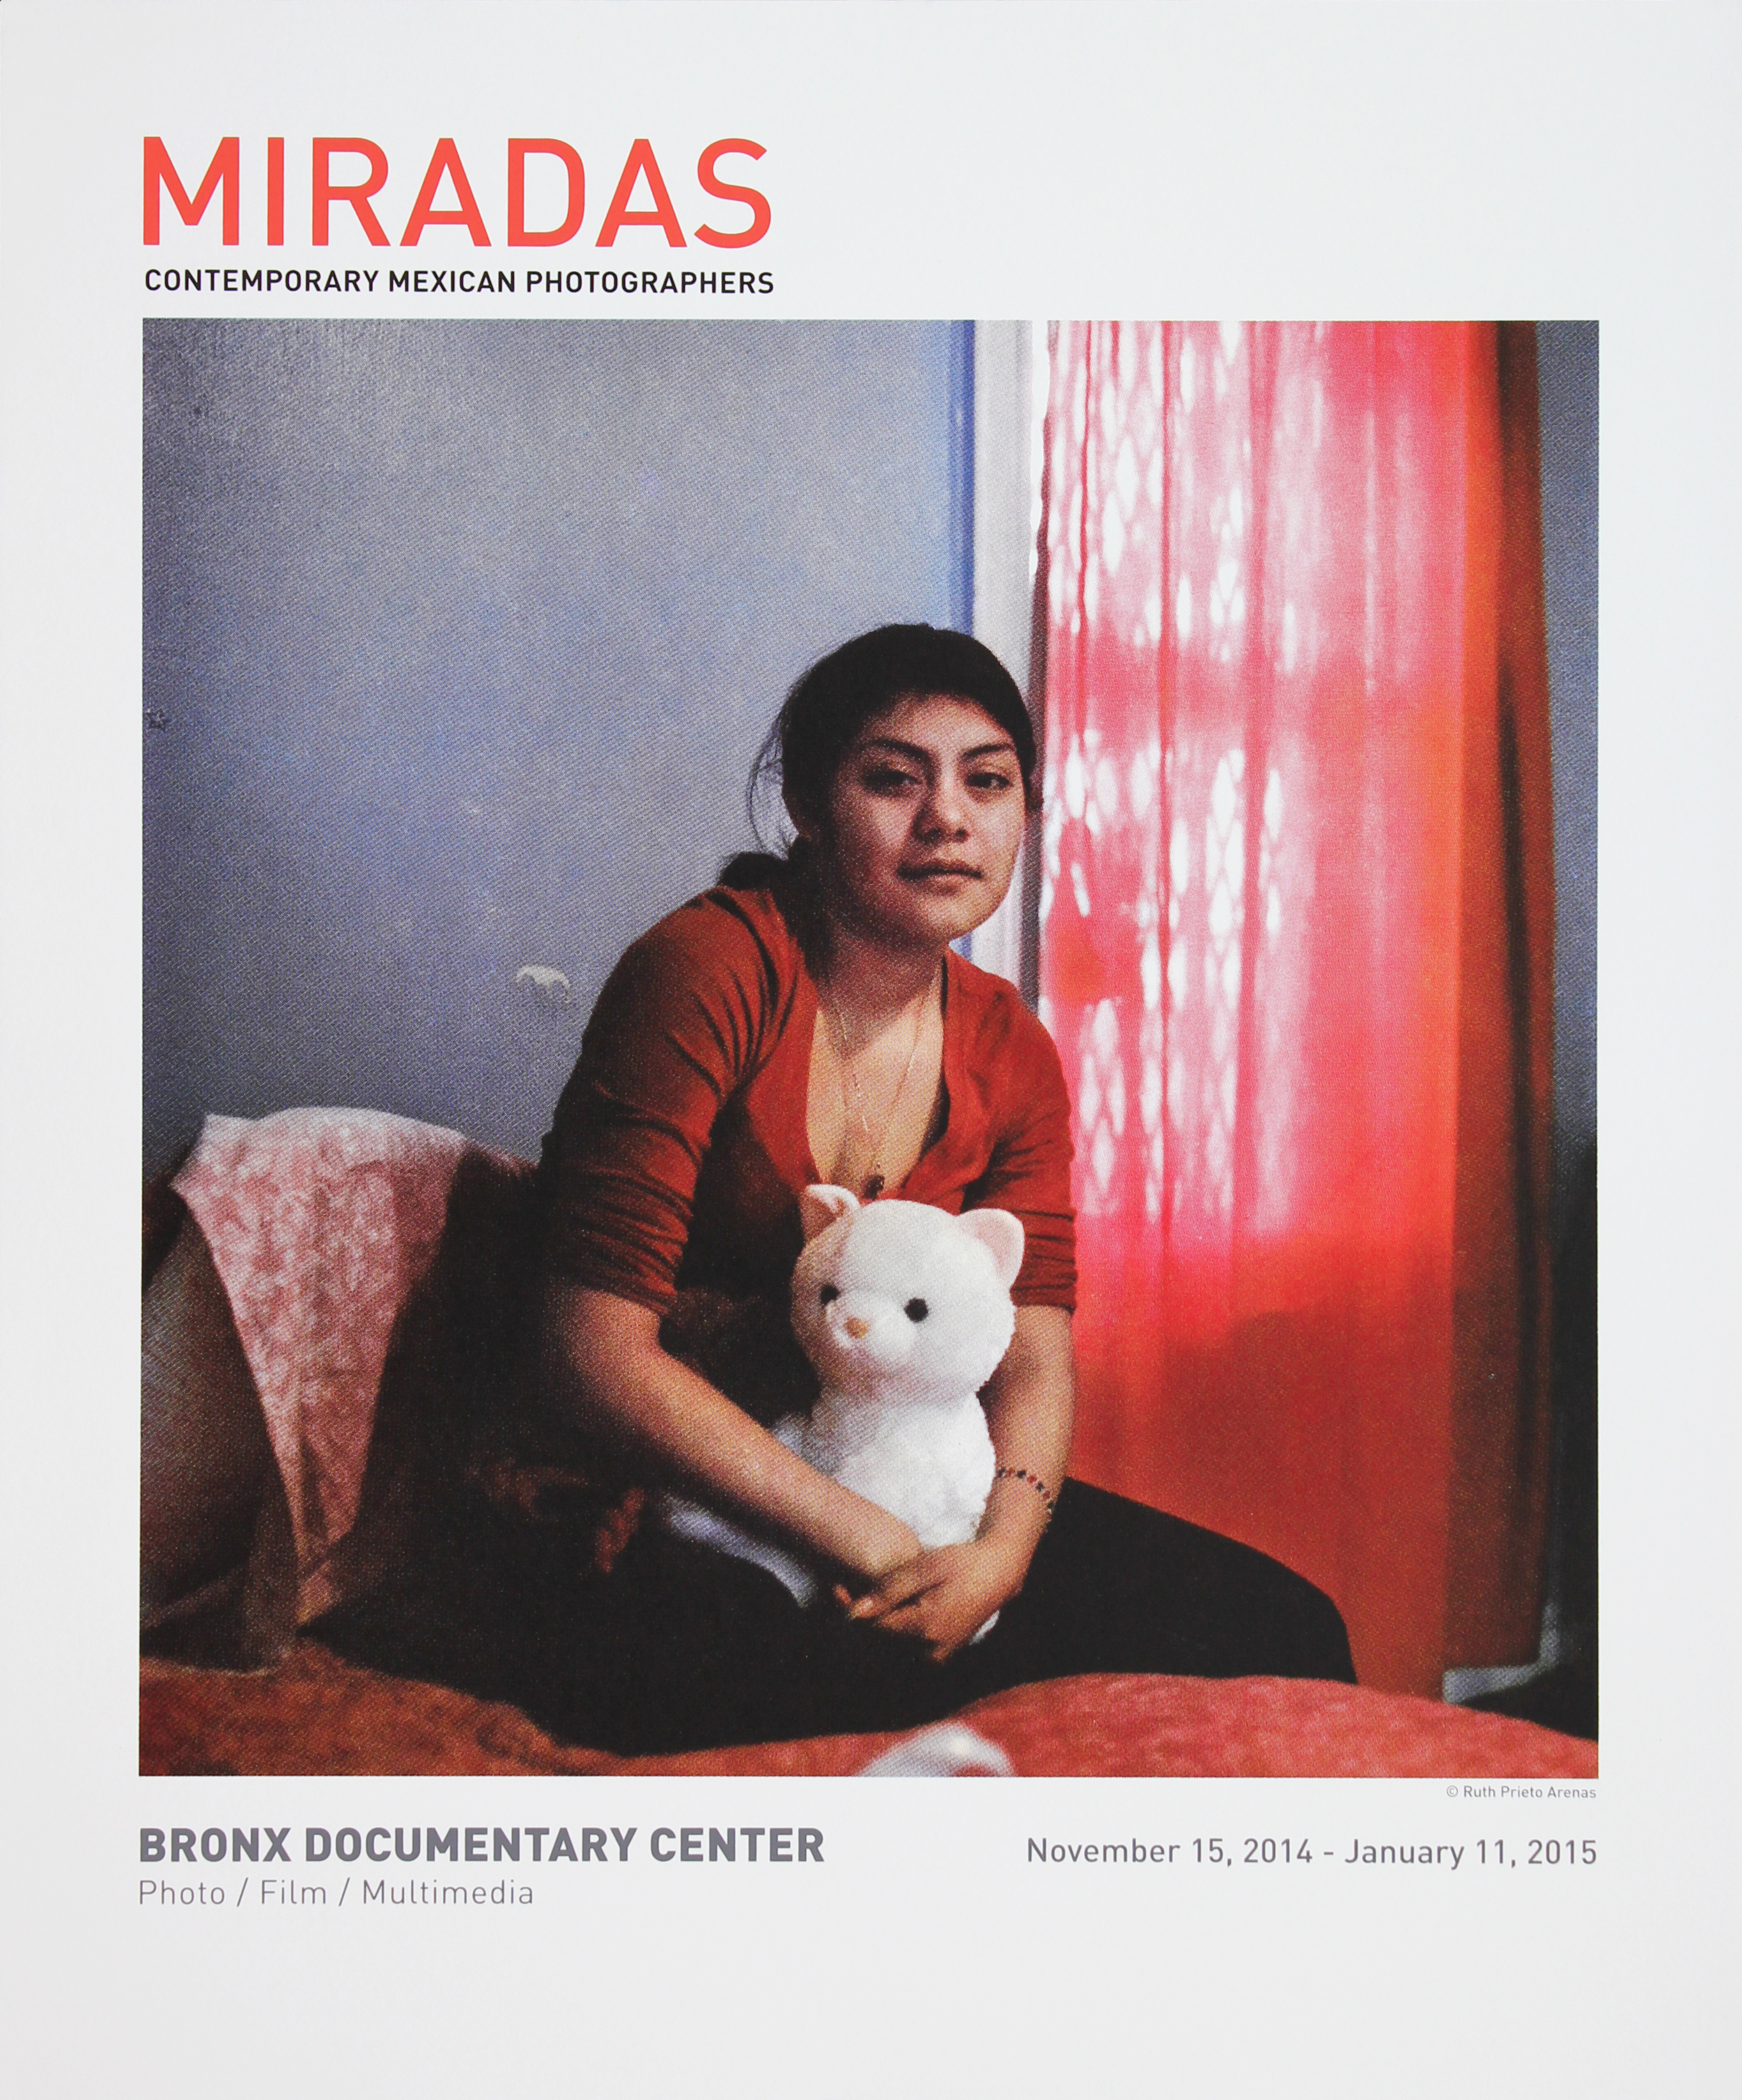 Bronx Doc Center - Miradas: Contemporary Mexican Photographers